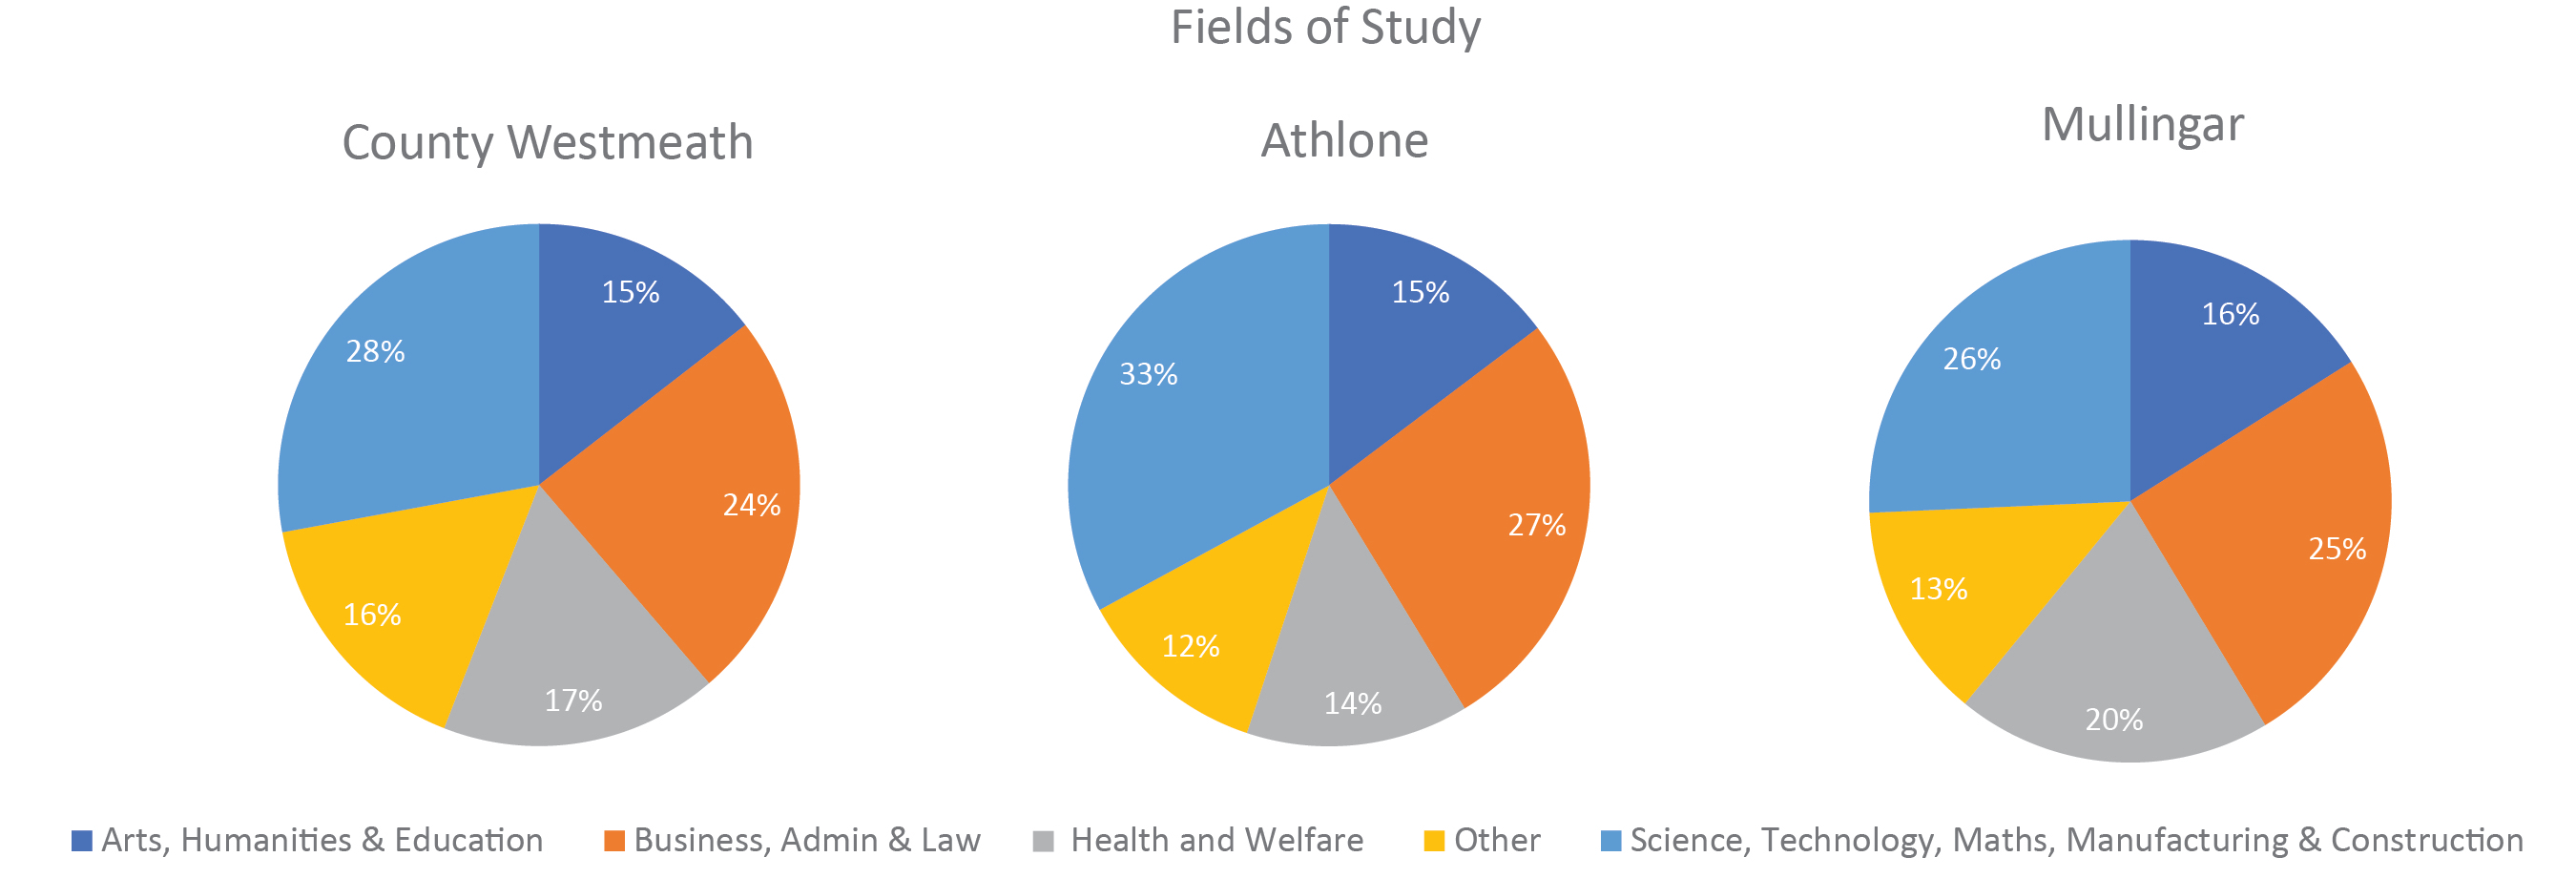 Figure 5.5 Westmeath, Athlone and Mullingar population aged 15 years and over by field of study